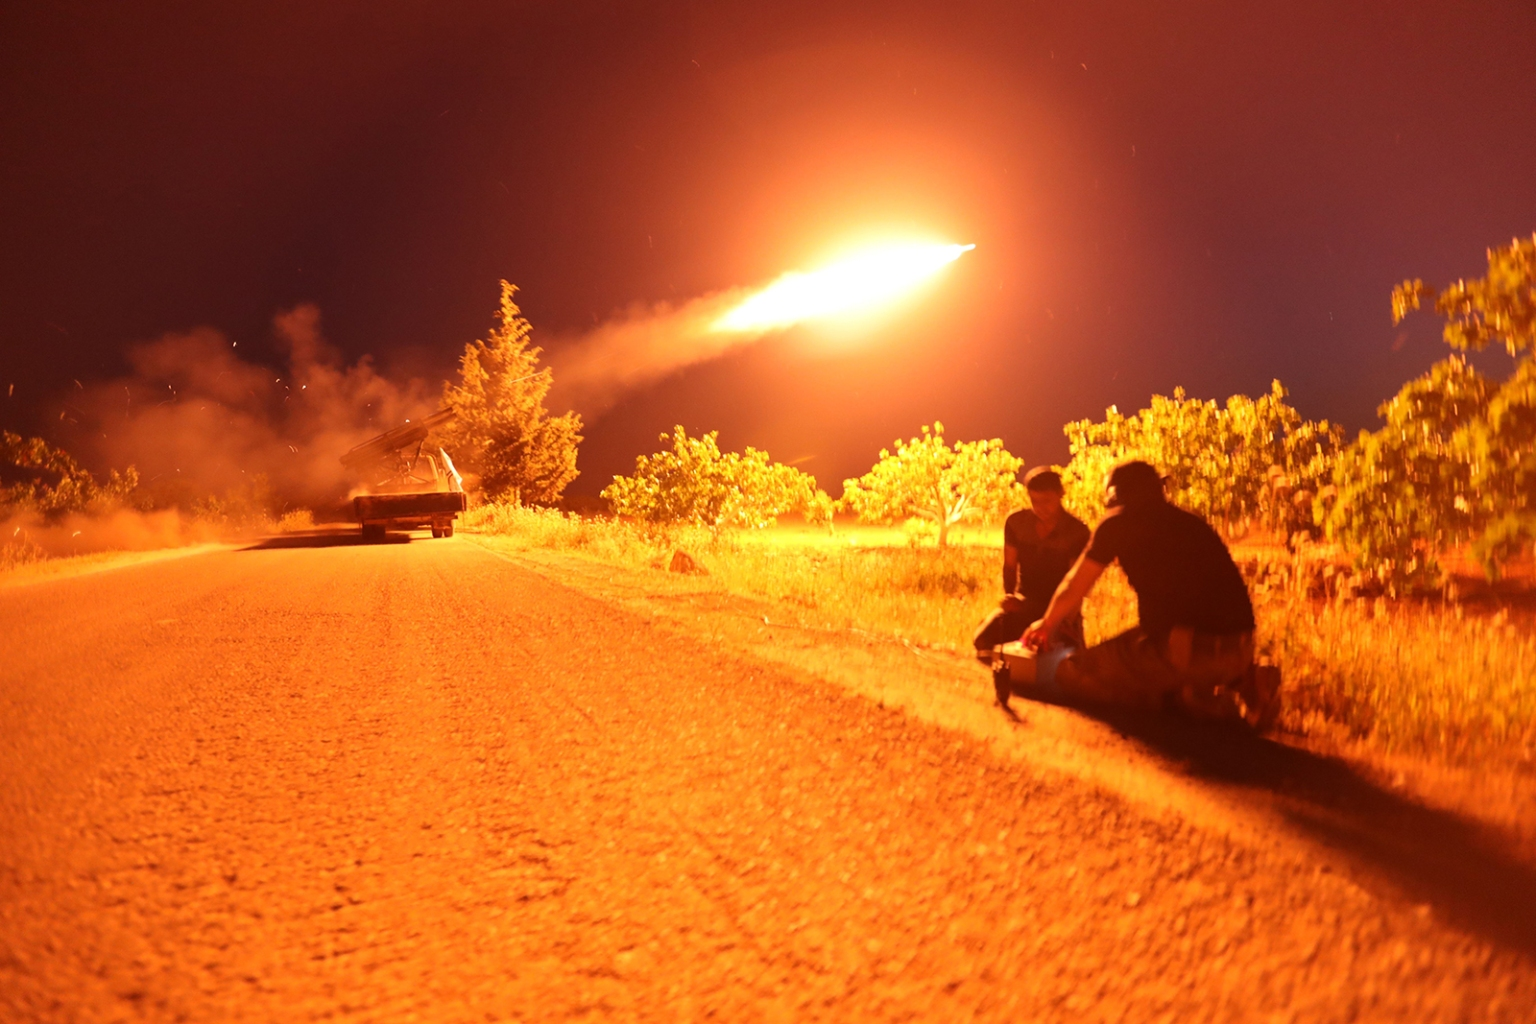 Syrian fighters from the Turkish-backed National Liberation Front fire a missile against regime positions in the rebel-held northern part of Syria's Hama province on May 13. OMAR HAJ KADOUR/AFP/Getty Images